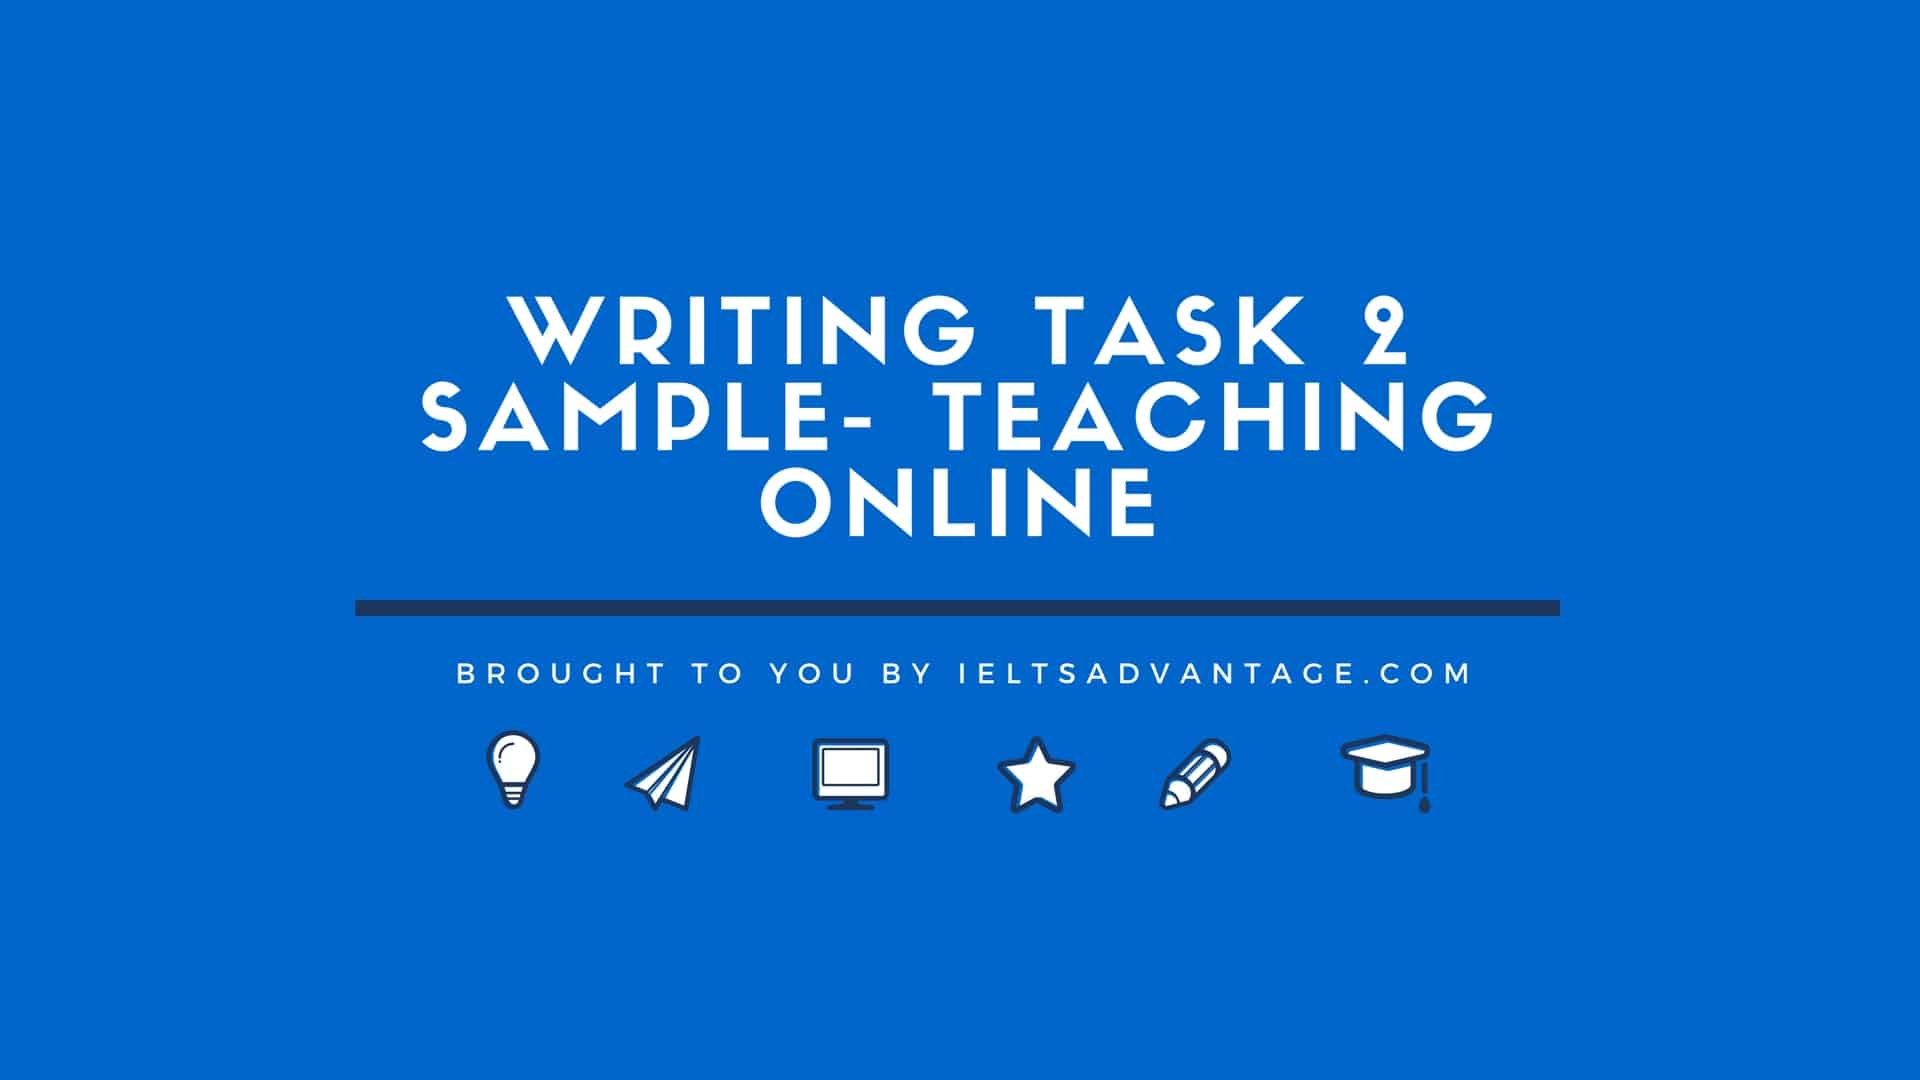 Writing Task 2 Sample- Teaching Online